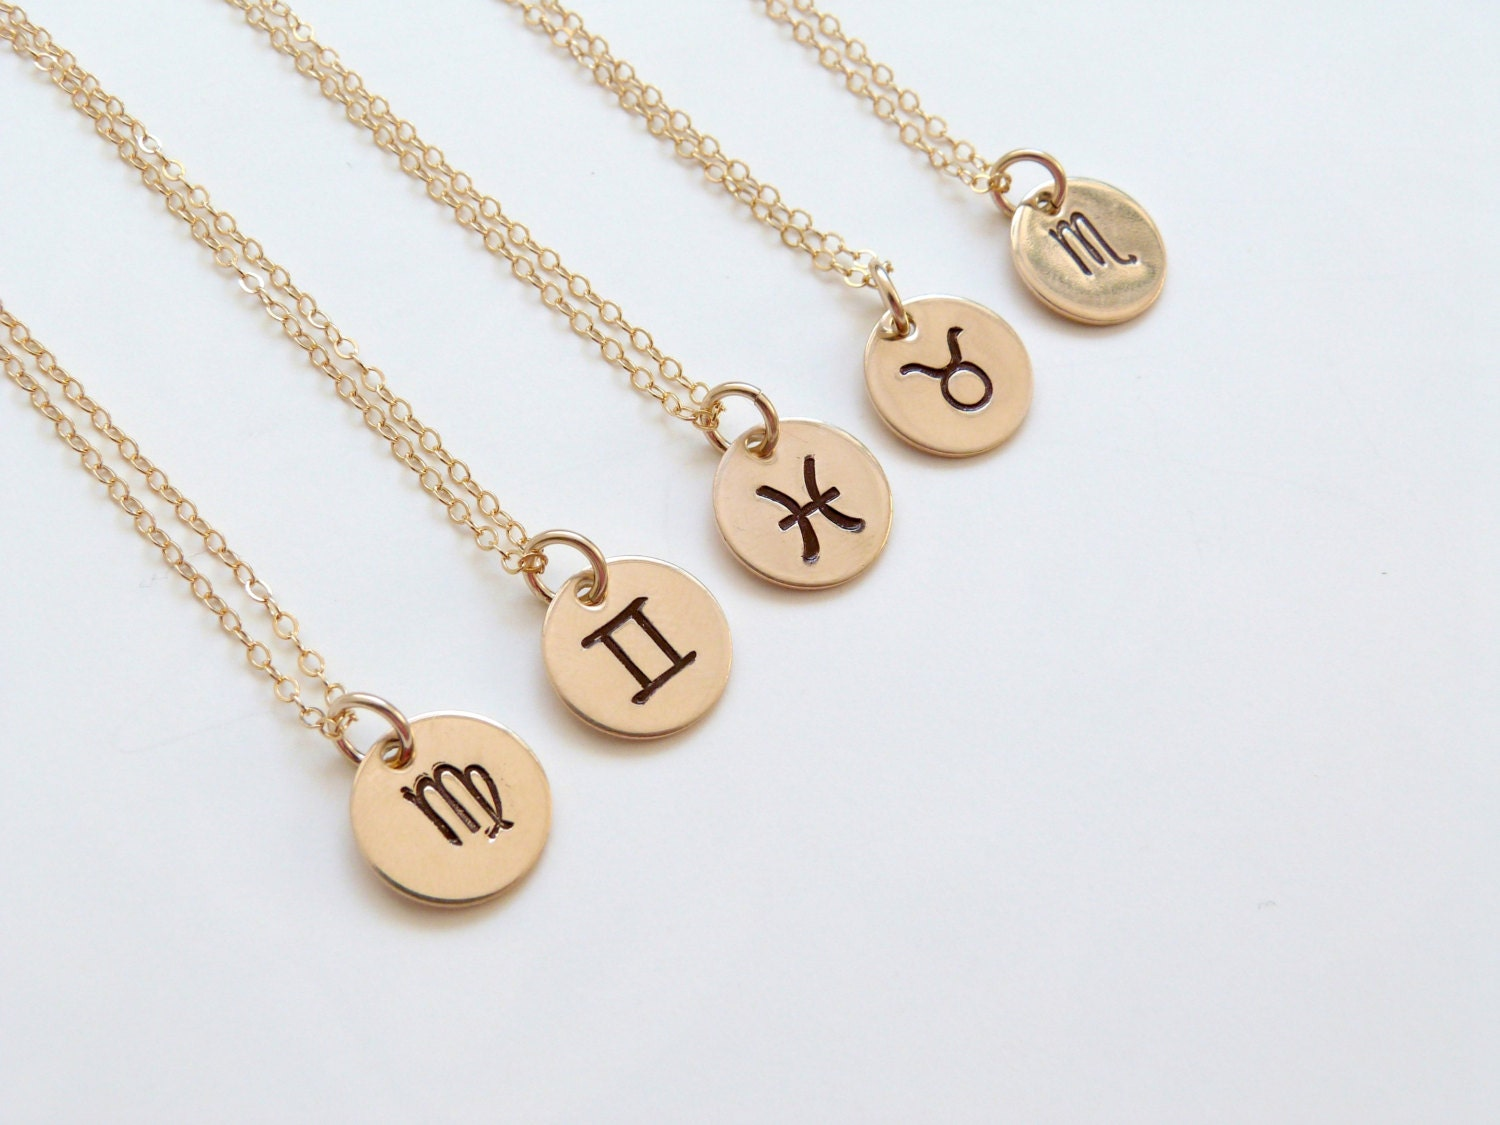 zodiac notonthehighstreet dizzy necklace personalised com by product silver original